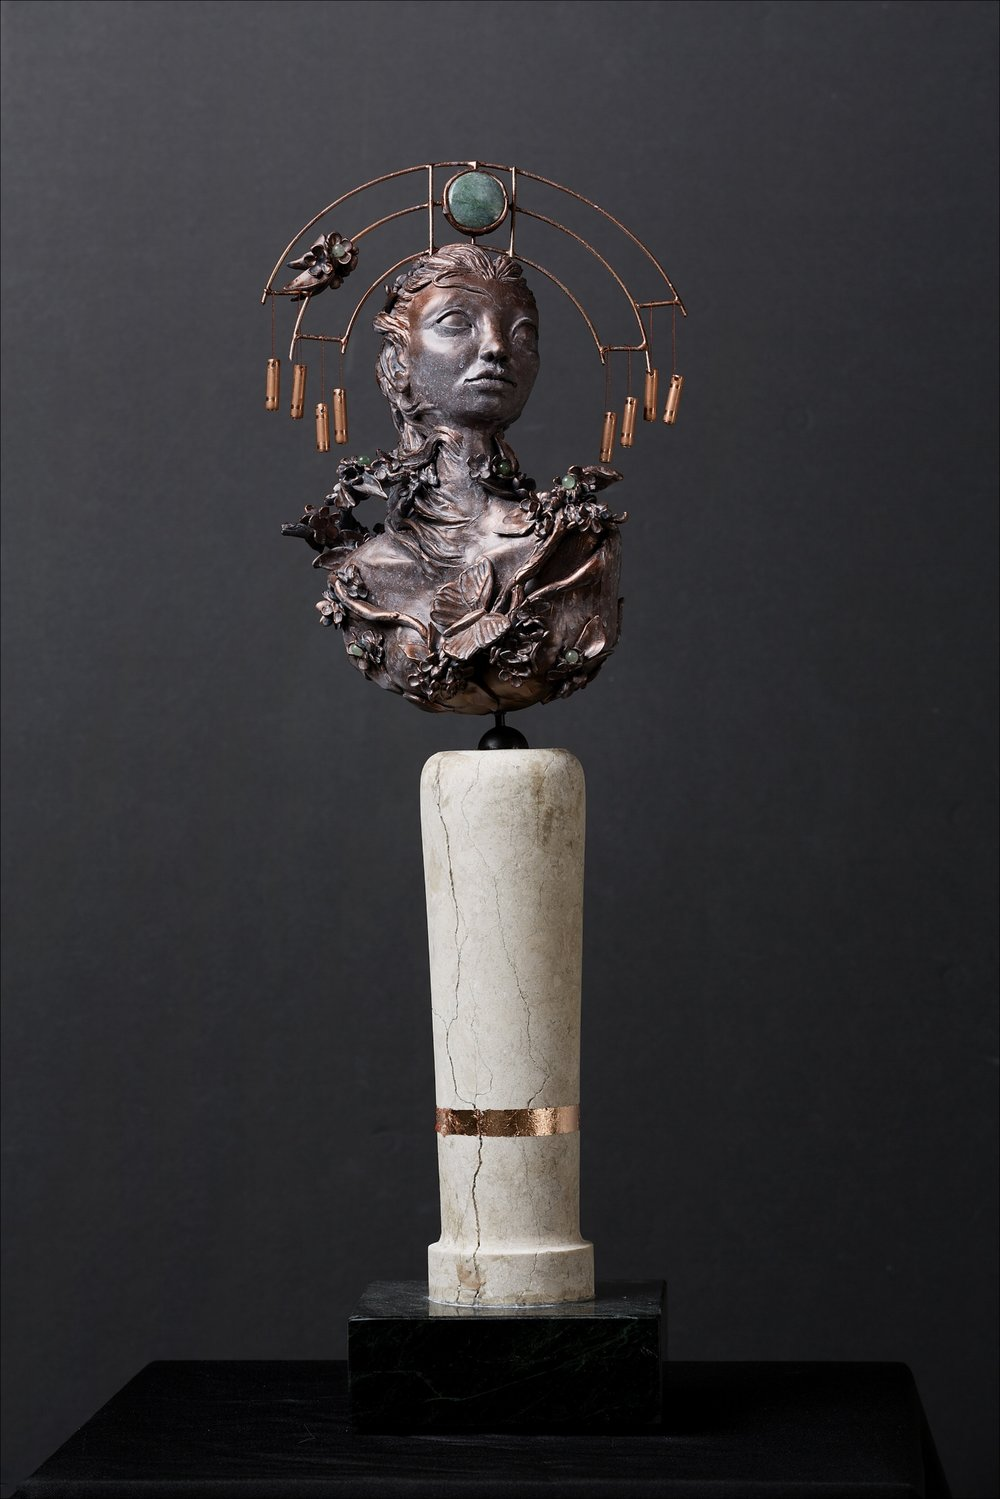 Force of Nature-Change - She is a Force of nature. She assumes the properties of wind to influence change.Polymer clay, epoxy clay, marble, granite, copper, aventurine, jade20